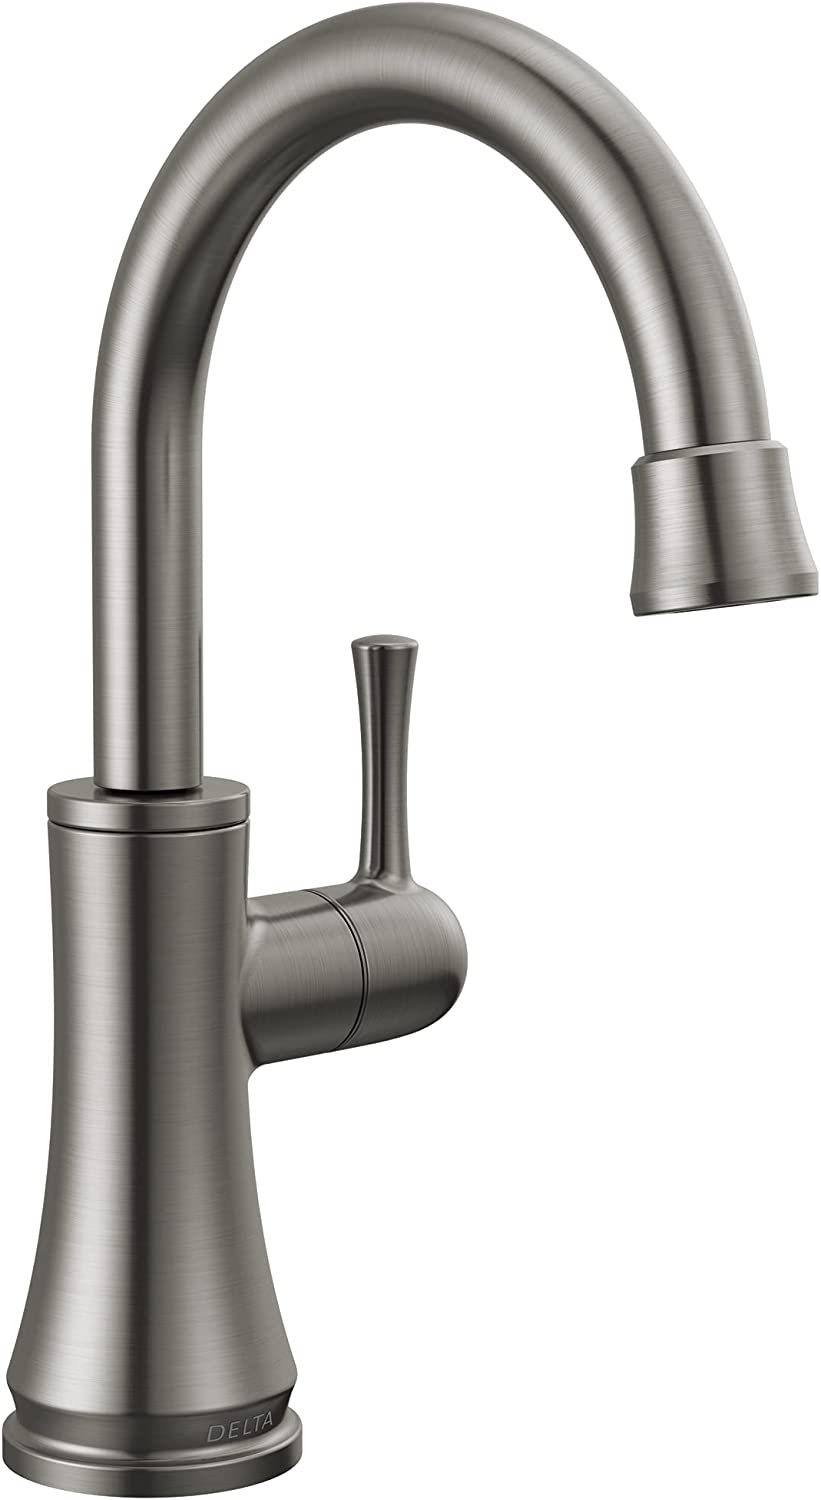 Delta Faucet 1920-KS-DST Traditional Beverage Faucet, Black Stainless